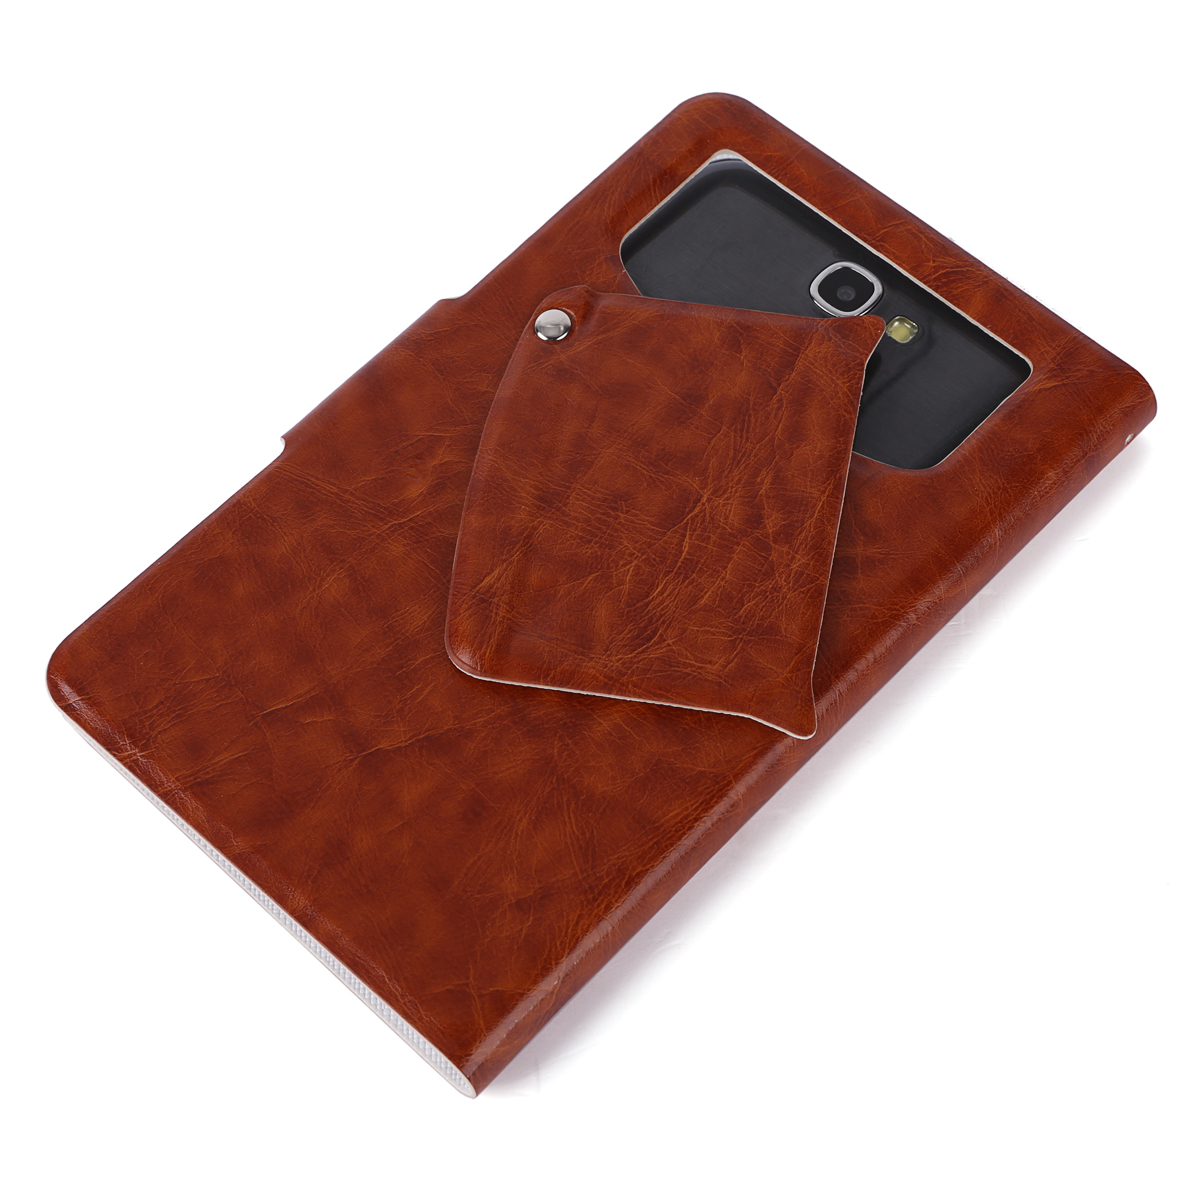 universal schutzh lle f r 4 5 5 zoll handy smartphone tasche cover case etui ebay. Black Bedroom Furniture Sets. Home Design Ideas